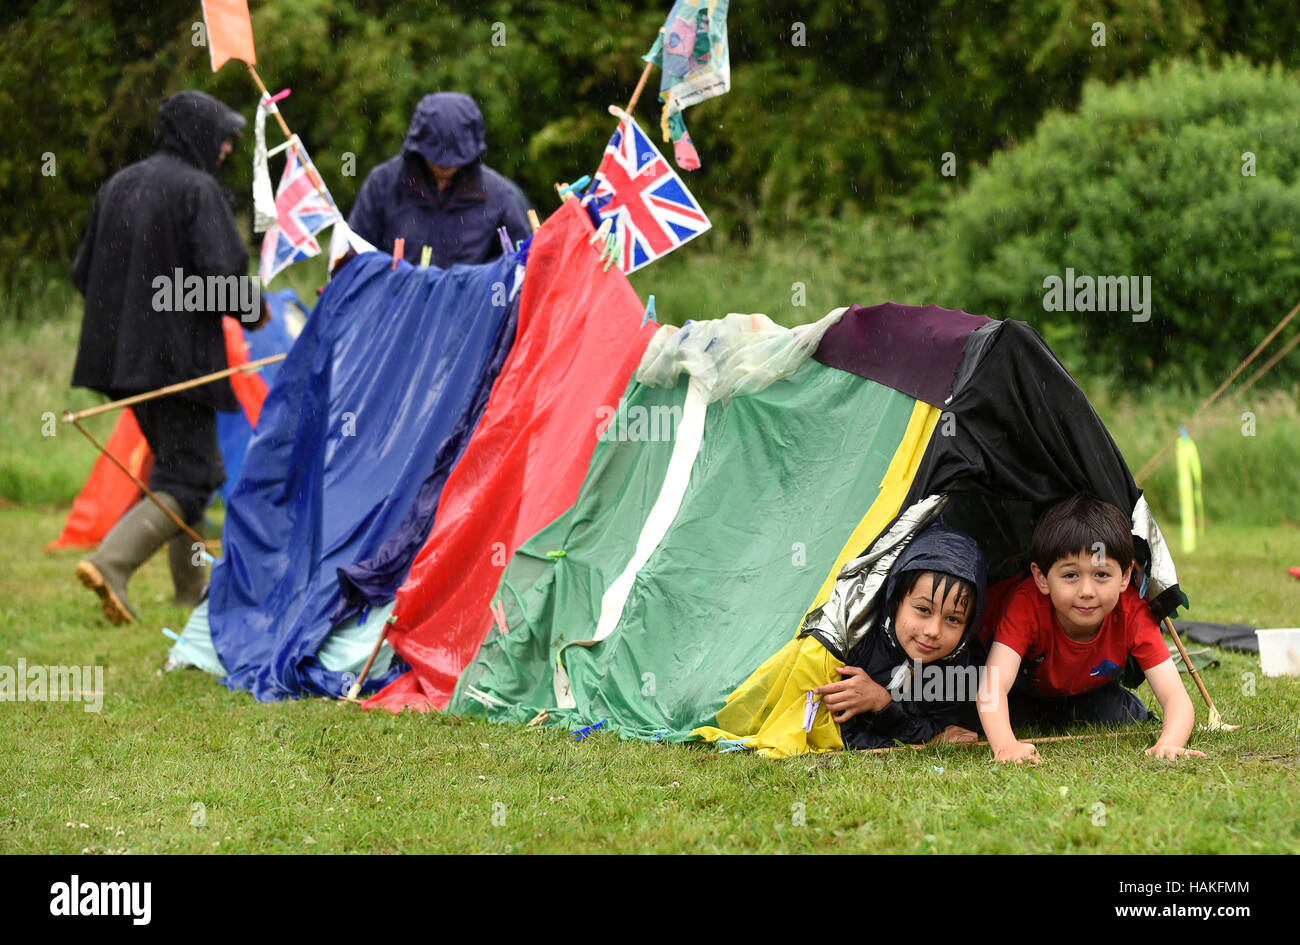 Children c&ing in home made tent at a wet rainy summer fete Uk  sc 1 st  Alamy : home made tent - memphite.com